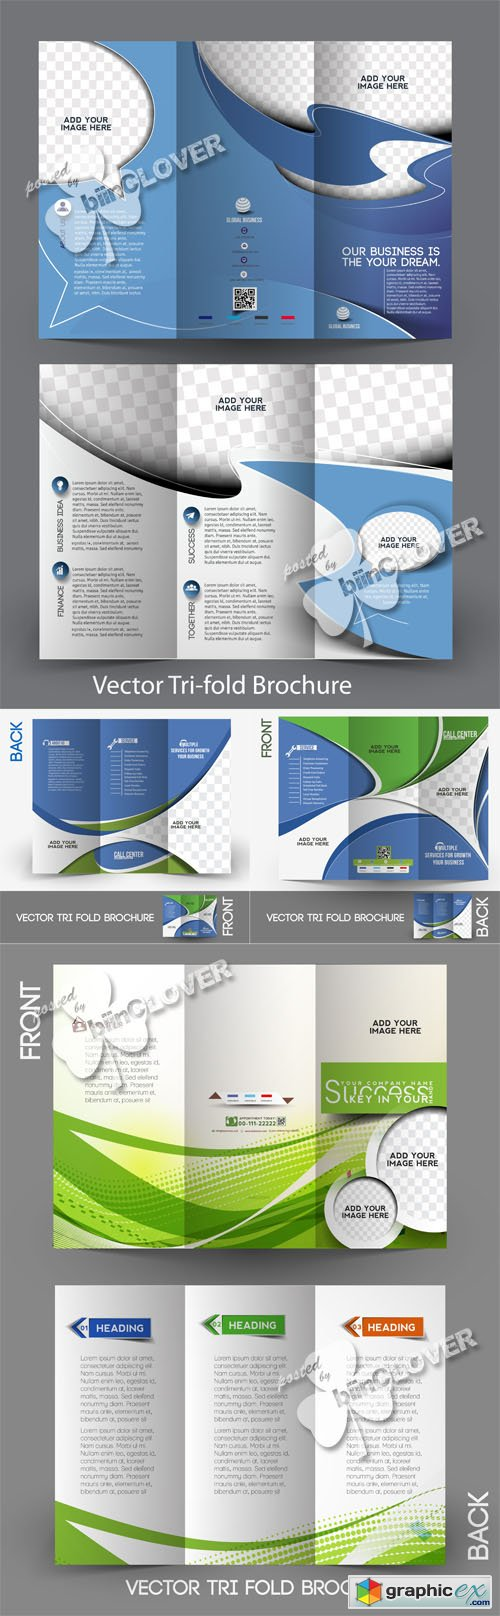 Vector Corporate brochure design 0508